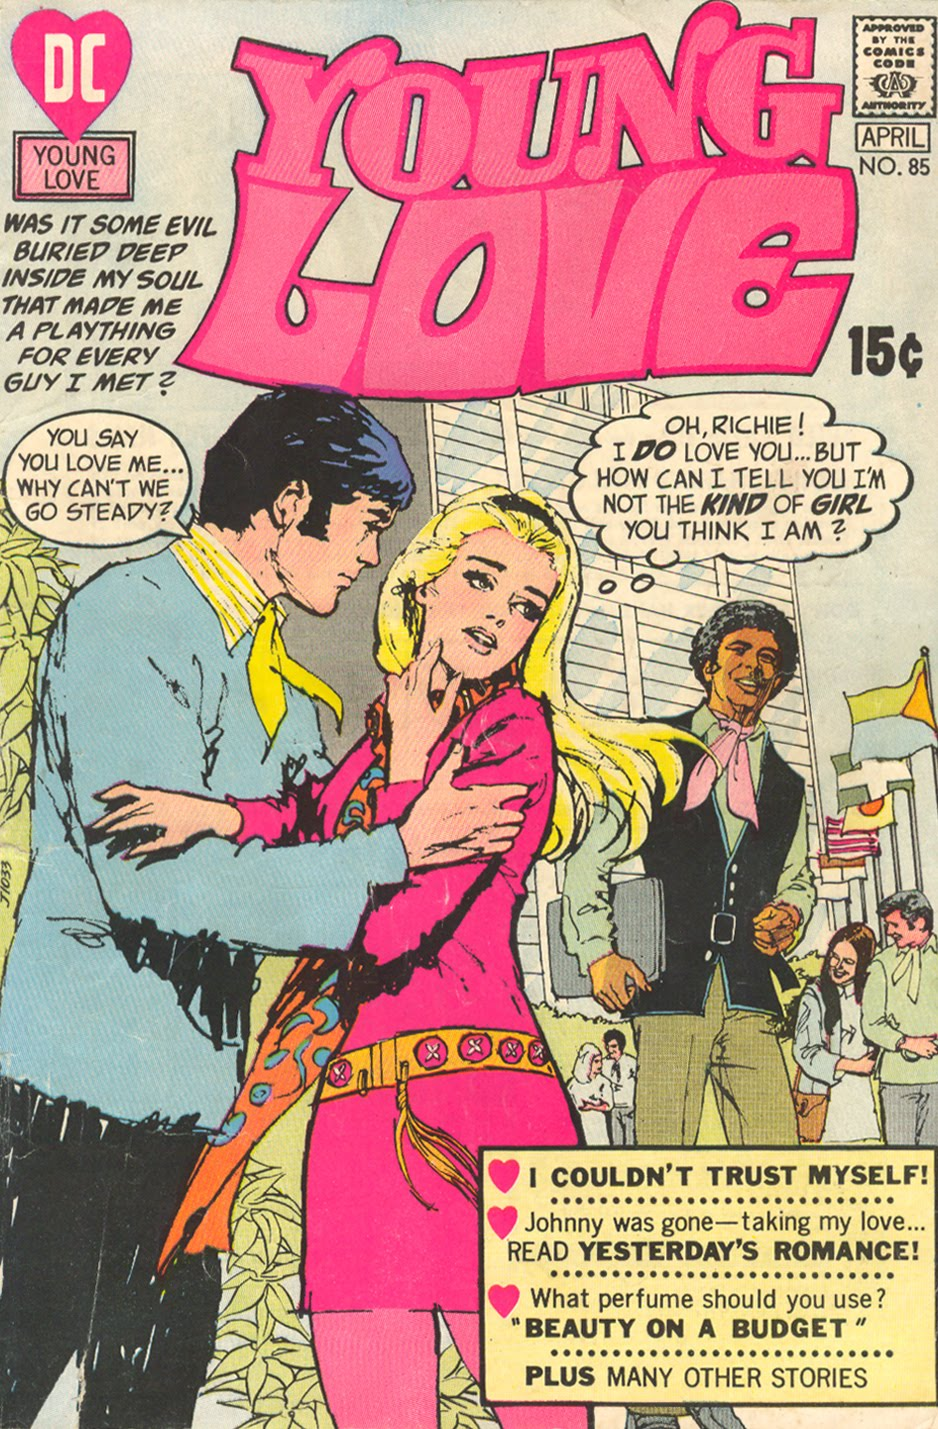 Young Love  #85 (March/April 1971)